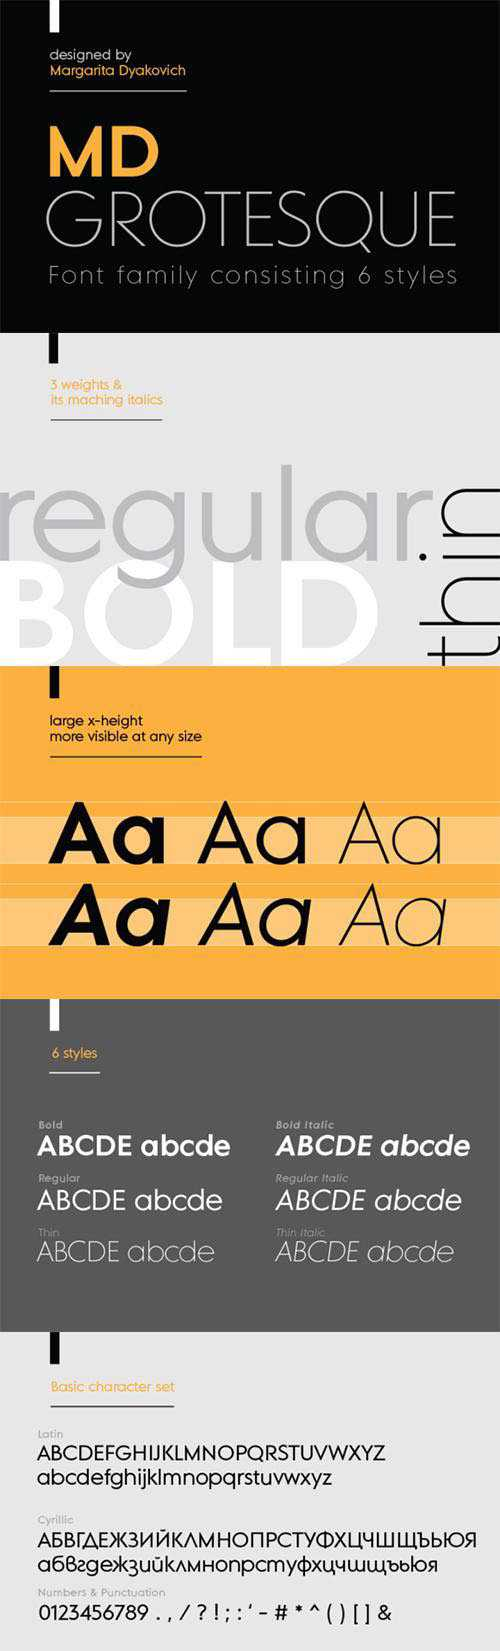 MD Grotesque font family